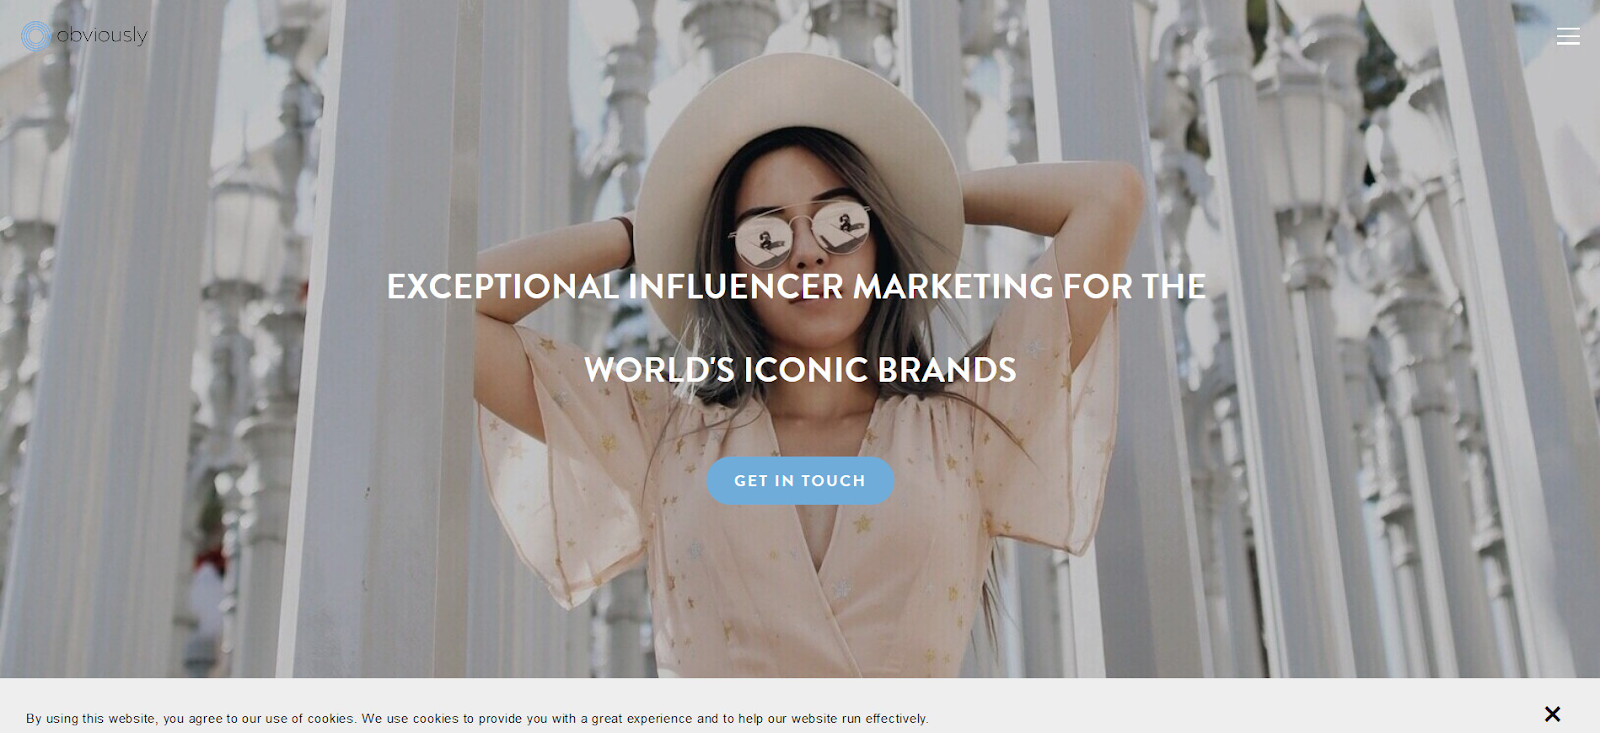 Obviously Top influencer marketing agency 2021